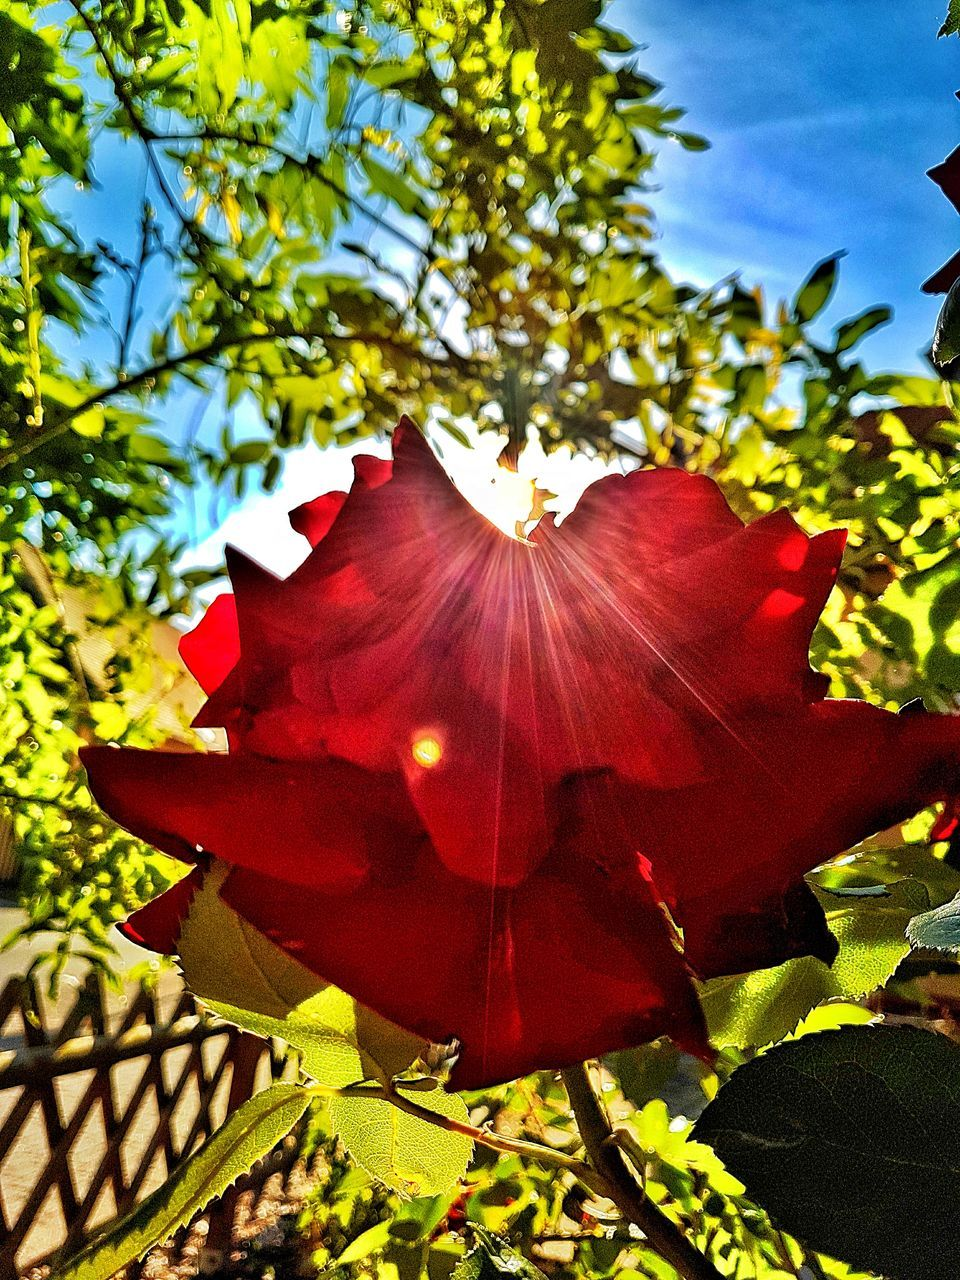 growth, red, beauty in nature, nature, flower, leaf, fragility, petal, plant, outdoors, day, freshness, no people, close-up, flower head, sunlight, tree, branch, maple leaf, hibiscus, blooming, sky